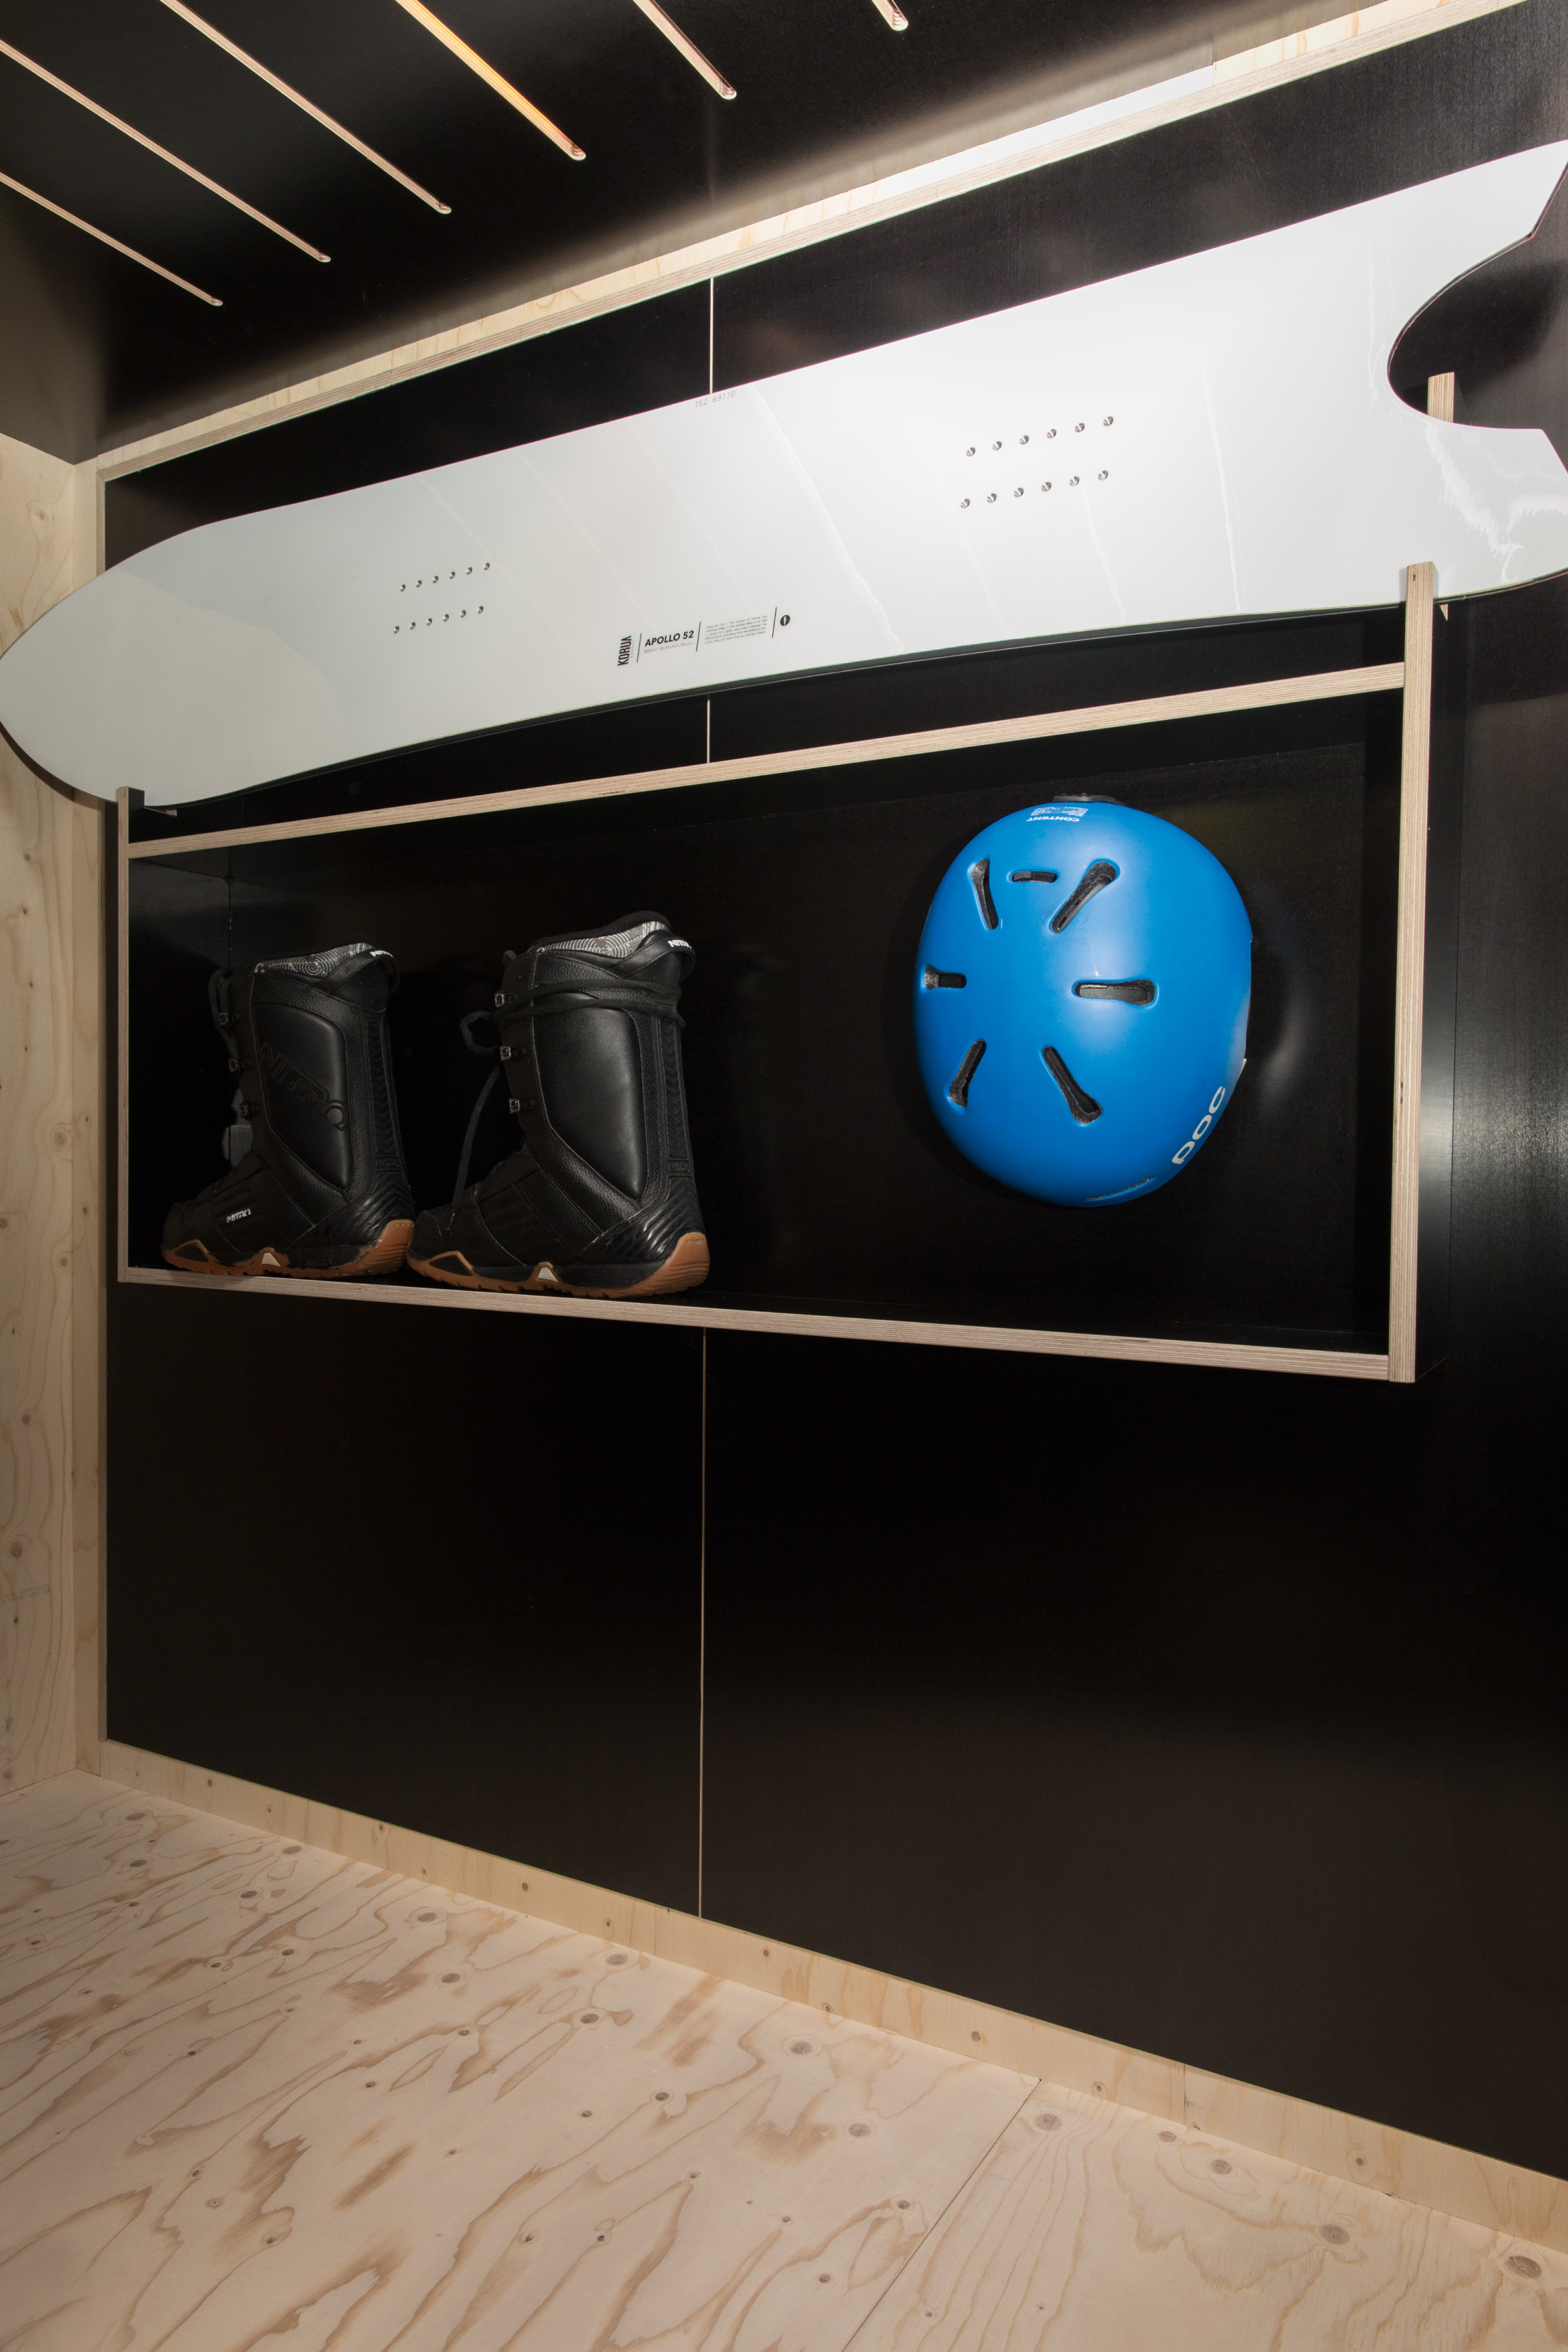 The Kammerspiel's storage space for snowboards or skis | © Julia Rotter